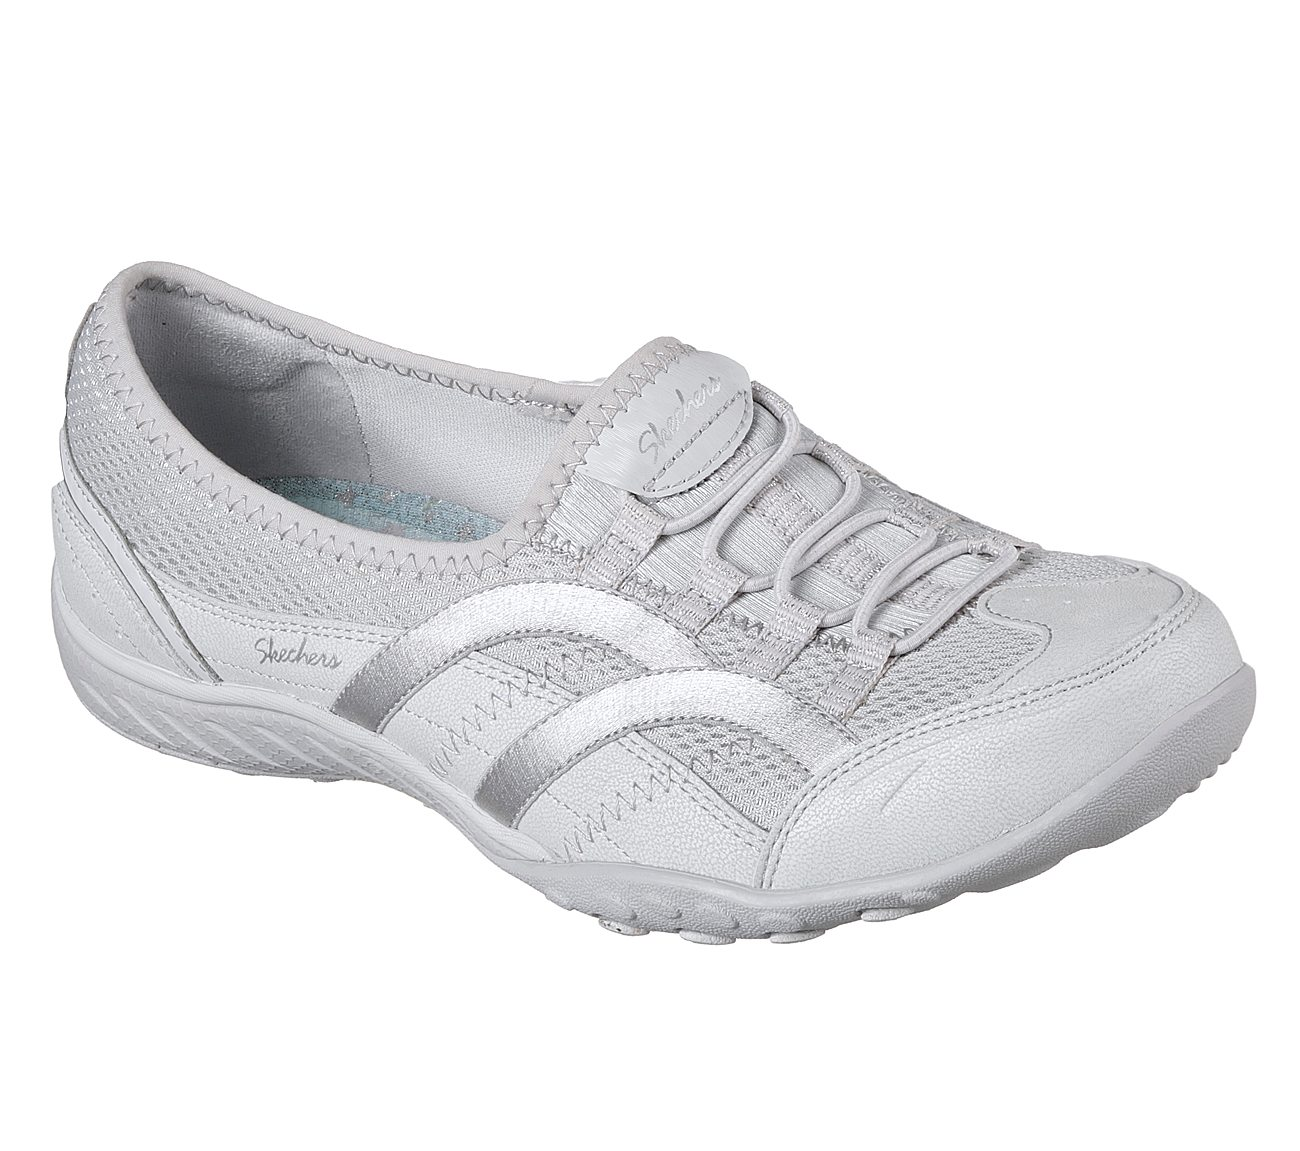 Skechers Relaxed Fit Breathe ... Easy Well Versed Women's Shoes 4SMOtp0e0i